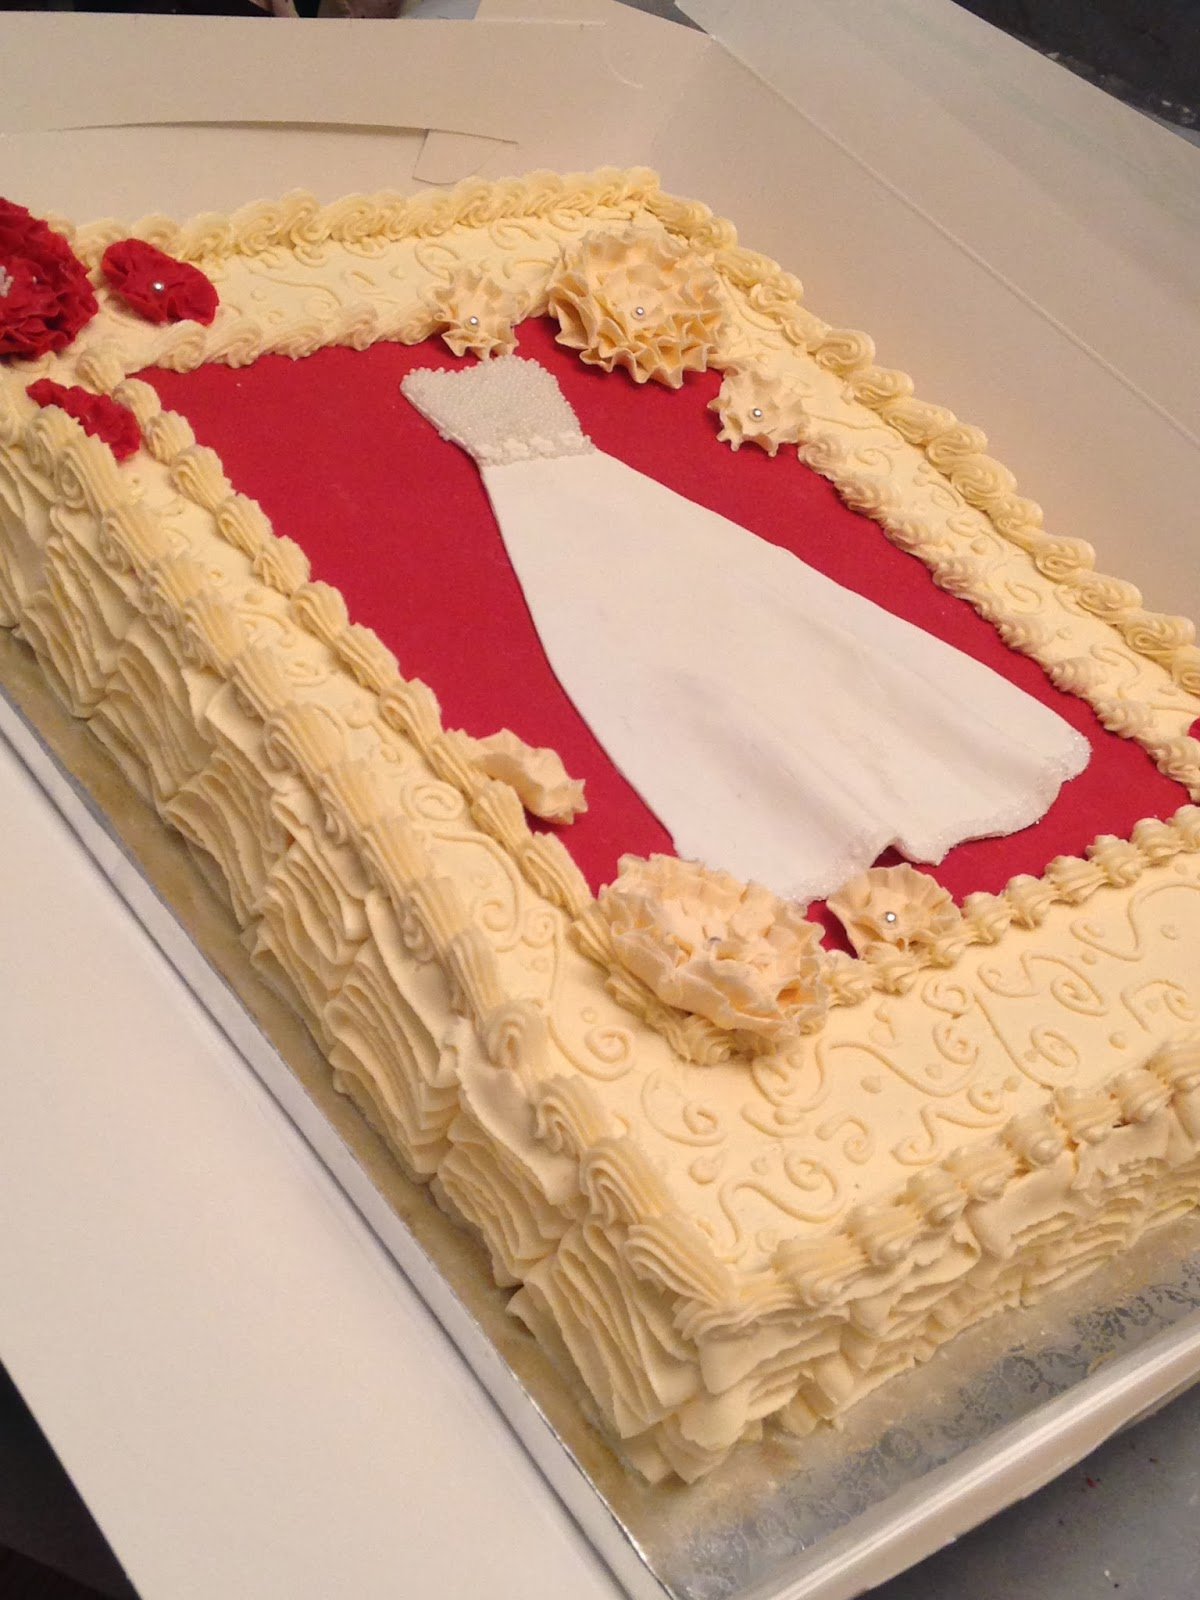 vintage style bridal shower cake 12 sheet cake red velvet cake with cream cheese icing handmade fondant wedding gown and flowers